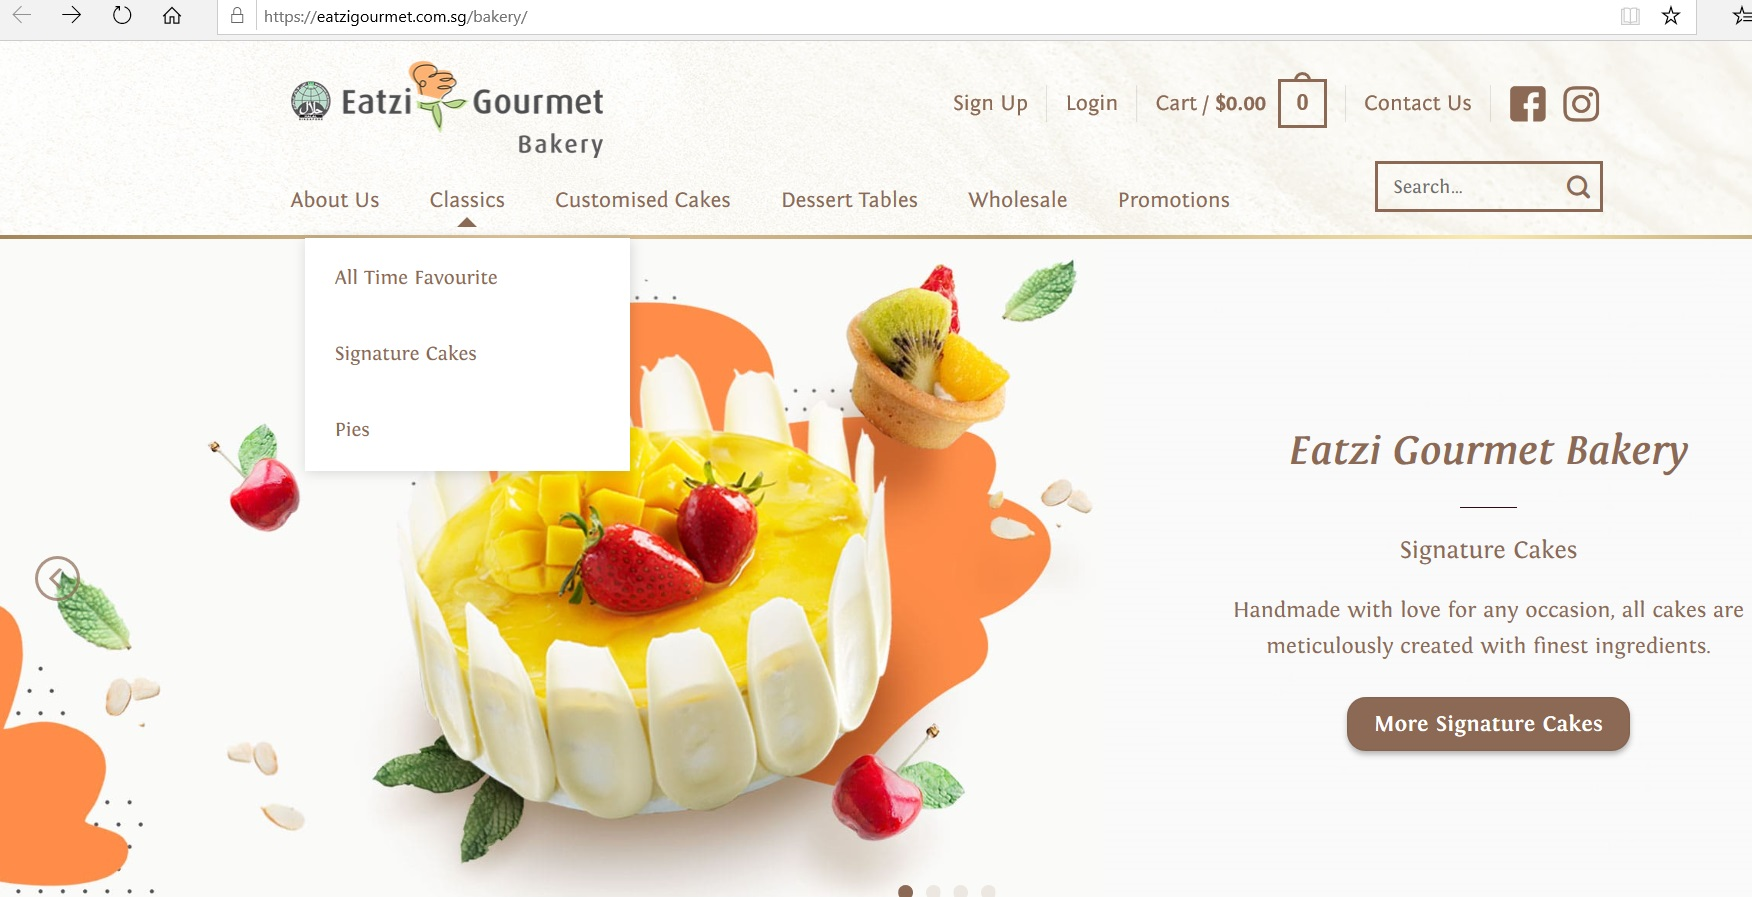 Eatzi Gourmet Bakery homepage with a product category dropdown.